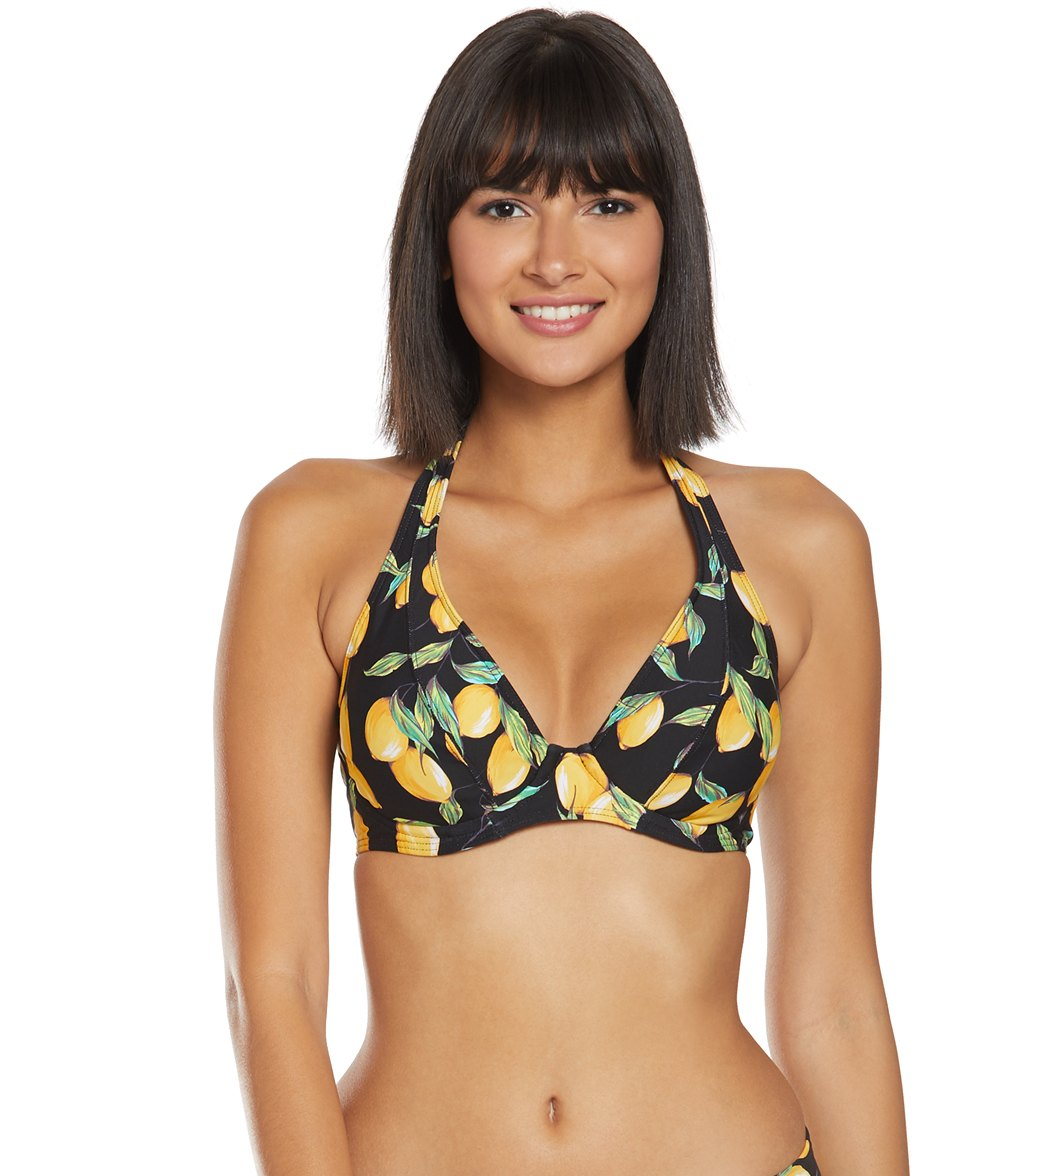 313605fd9557d Sunsets Limoncello Muse Halter Bikini Top (D/DD Cup) at SwimOutlet ...